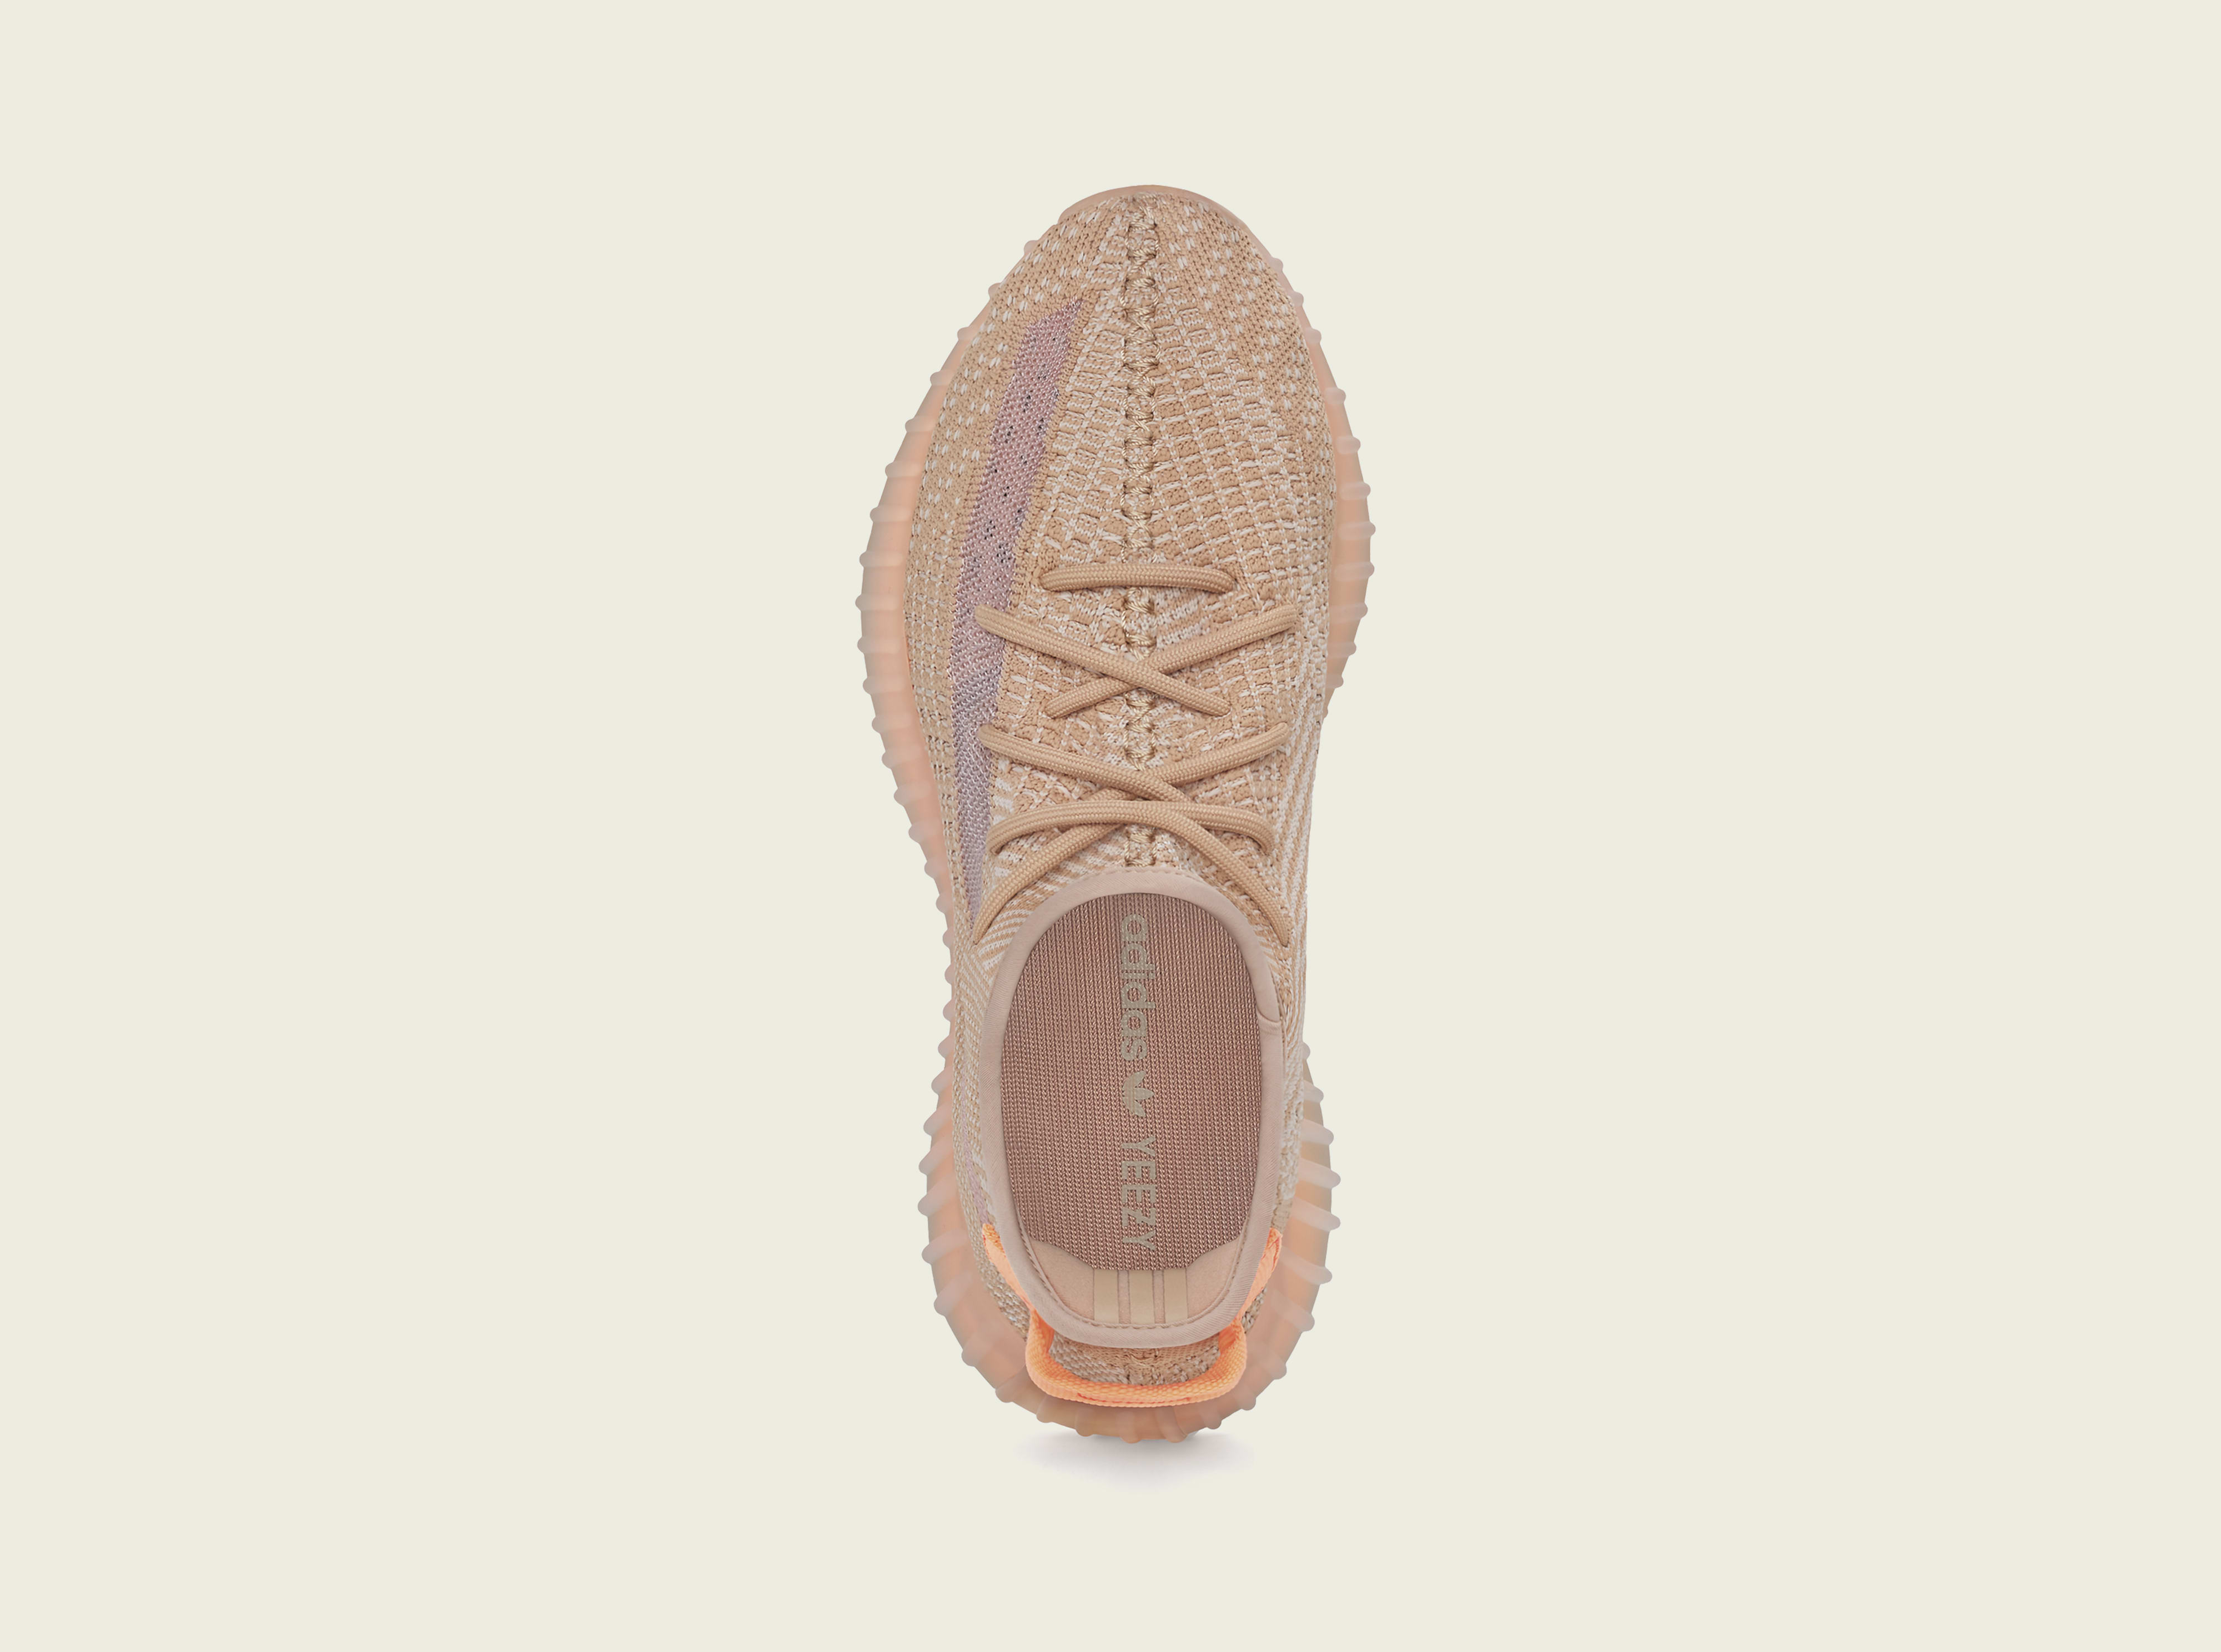 Adidas Yeezy Boost 350 V2 'Clay' (Top)